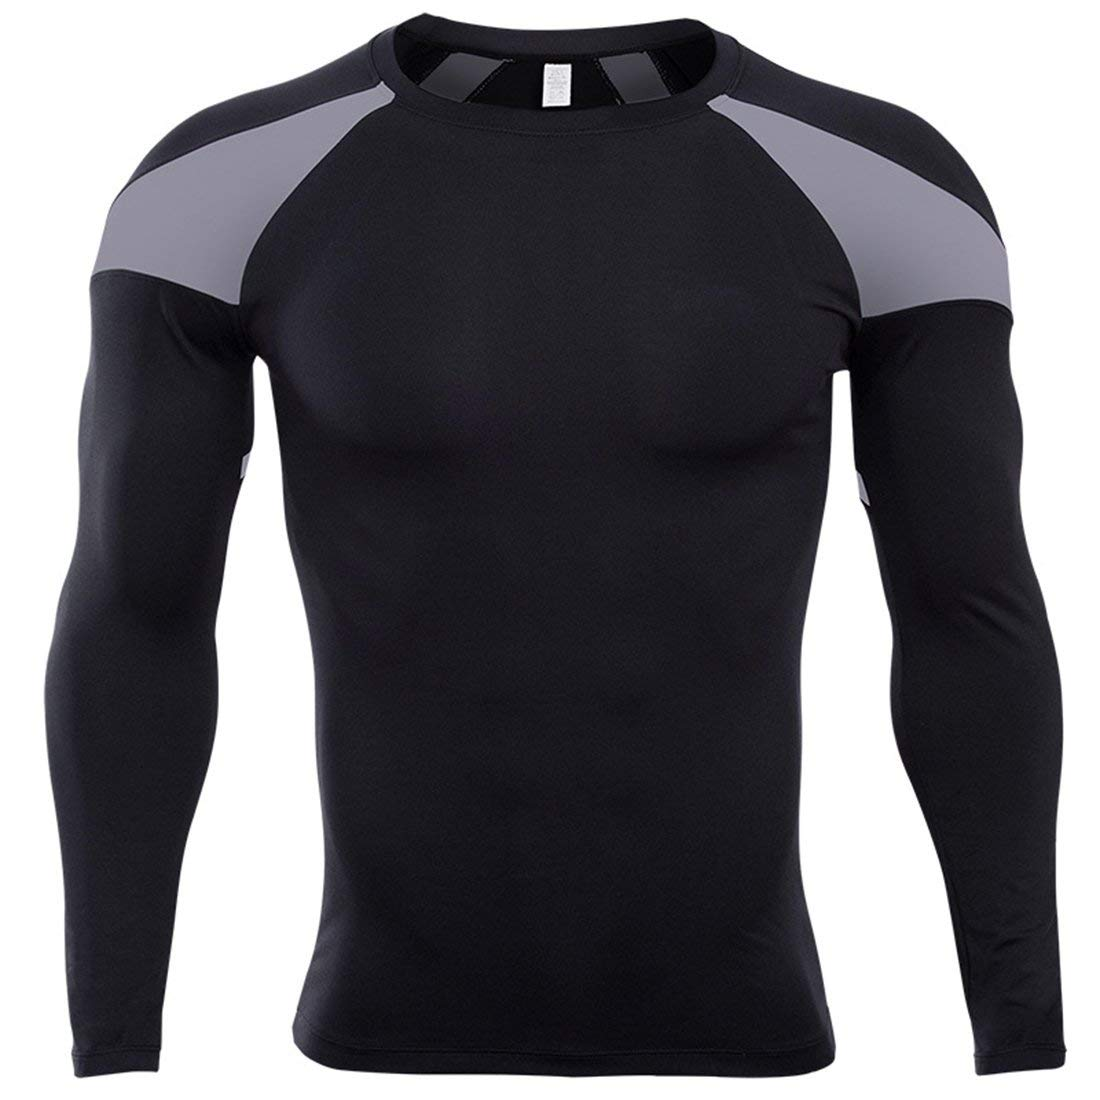 SEVENWELL Men's Dri Fit Compression Shirts Long Sleeve Gym Workout Fitness Base Layer Breathable Tops M-2XL